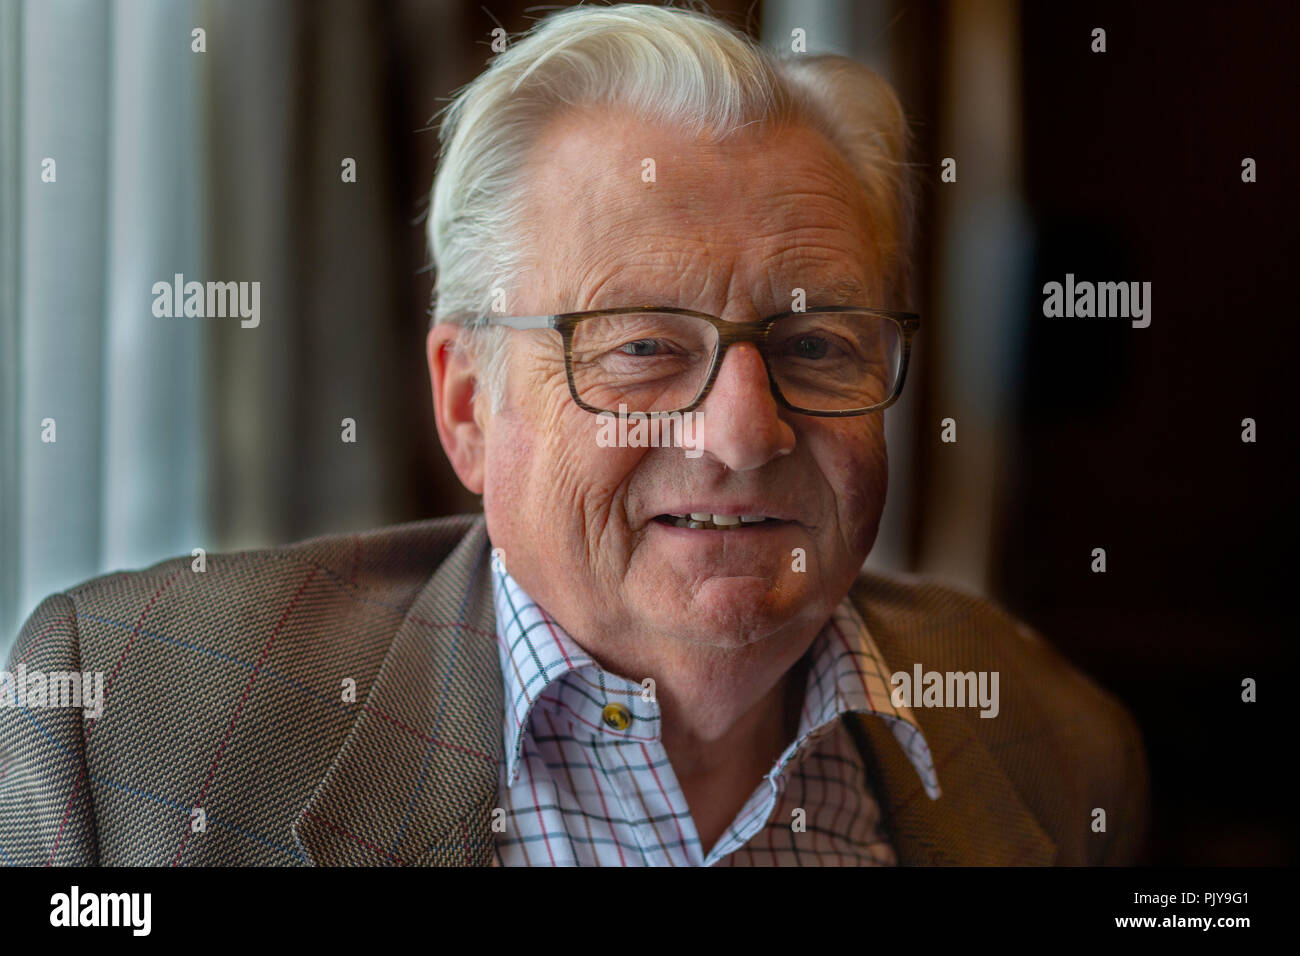 Cardiff, UK. September 2018. Lord Dafydd Elis-Thomas at Cardiff Book Festival. Stock Photo